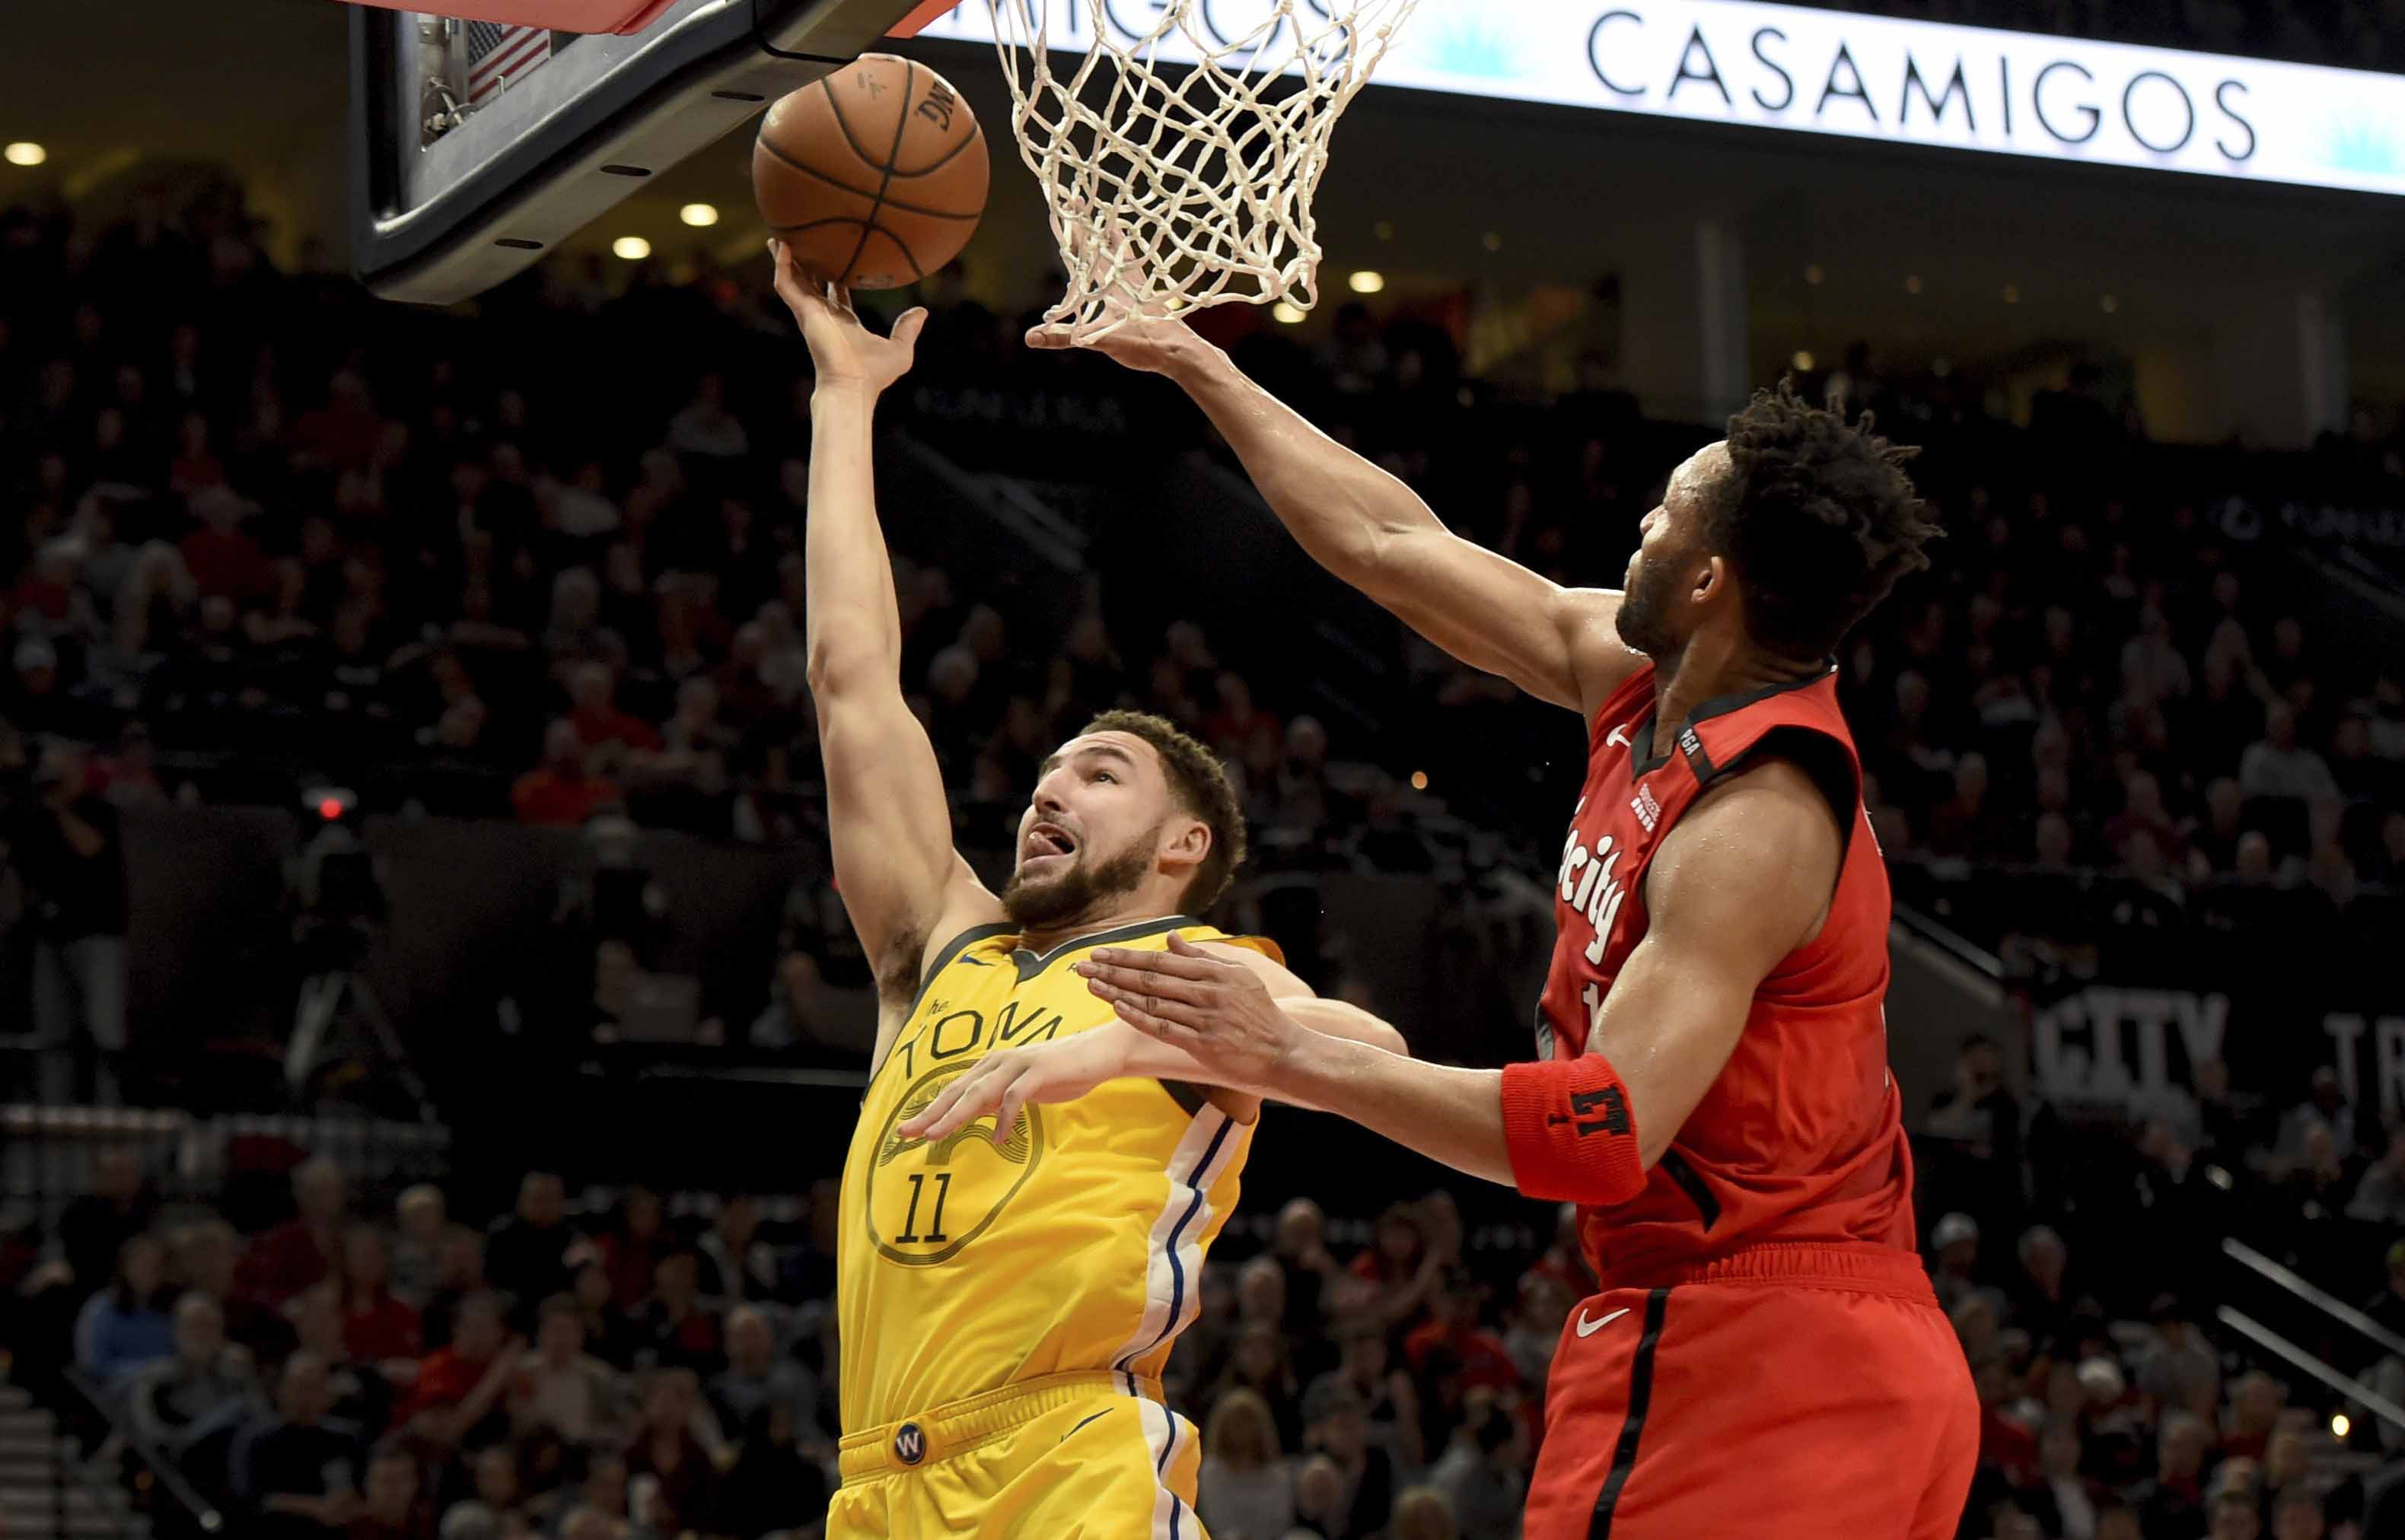 c8b62807b6be Golden State Warriors guard Klay Thompson (left) drives to the basket on  Portland Trail Blazers guard Evan Turner (right) during the first half of  an NBA ...